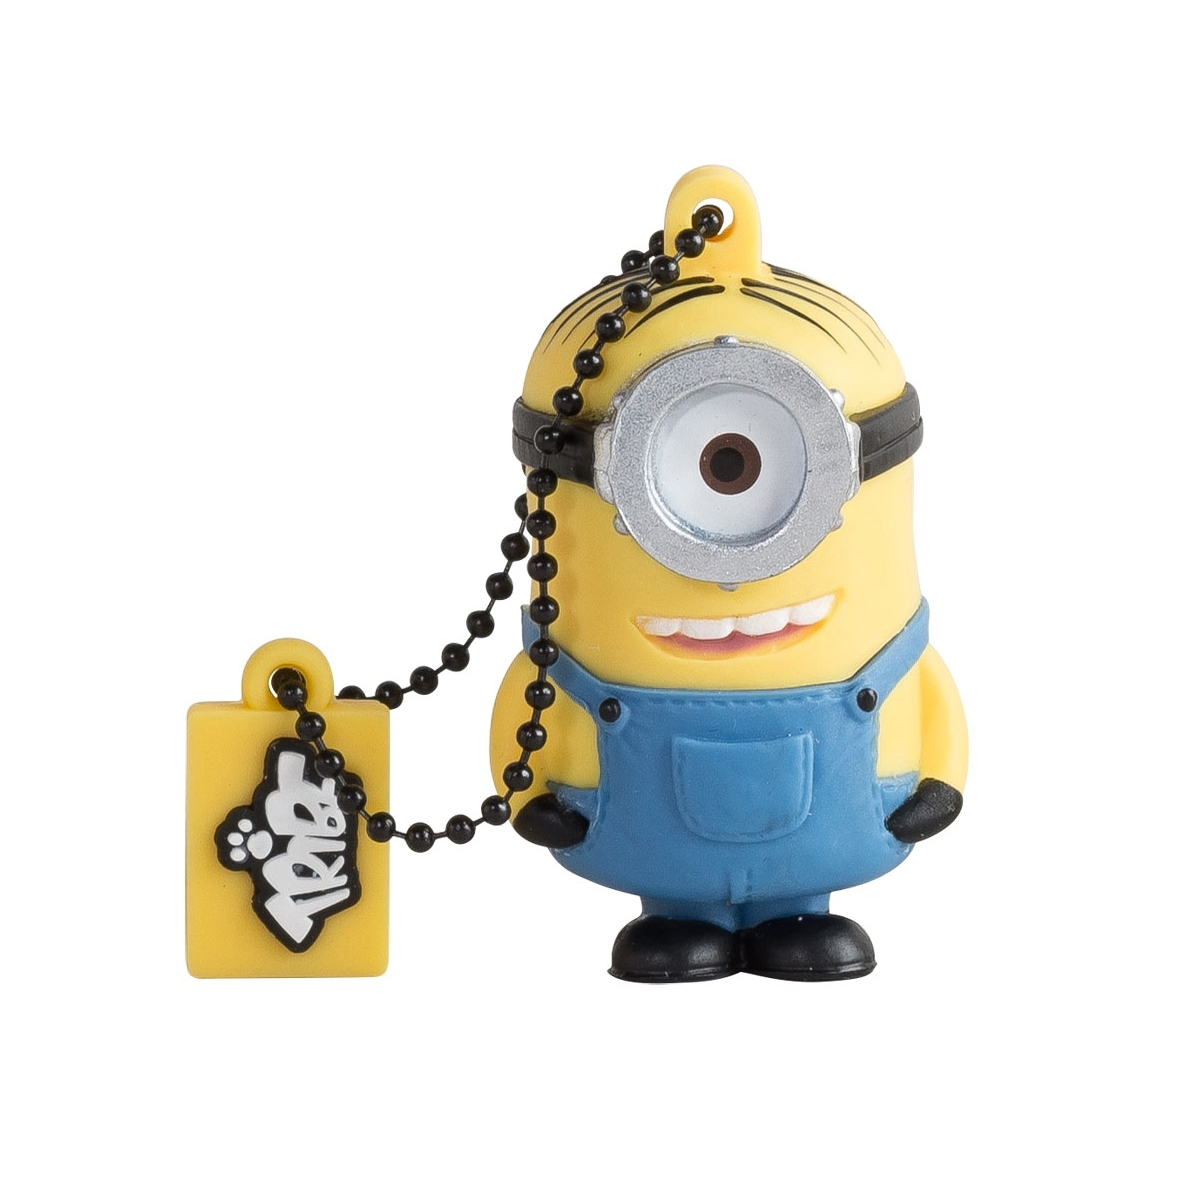 minions cl usb stuart 8 gb figurine discount. Black Bedroom Furniture Sets. Home Design Ideas